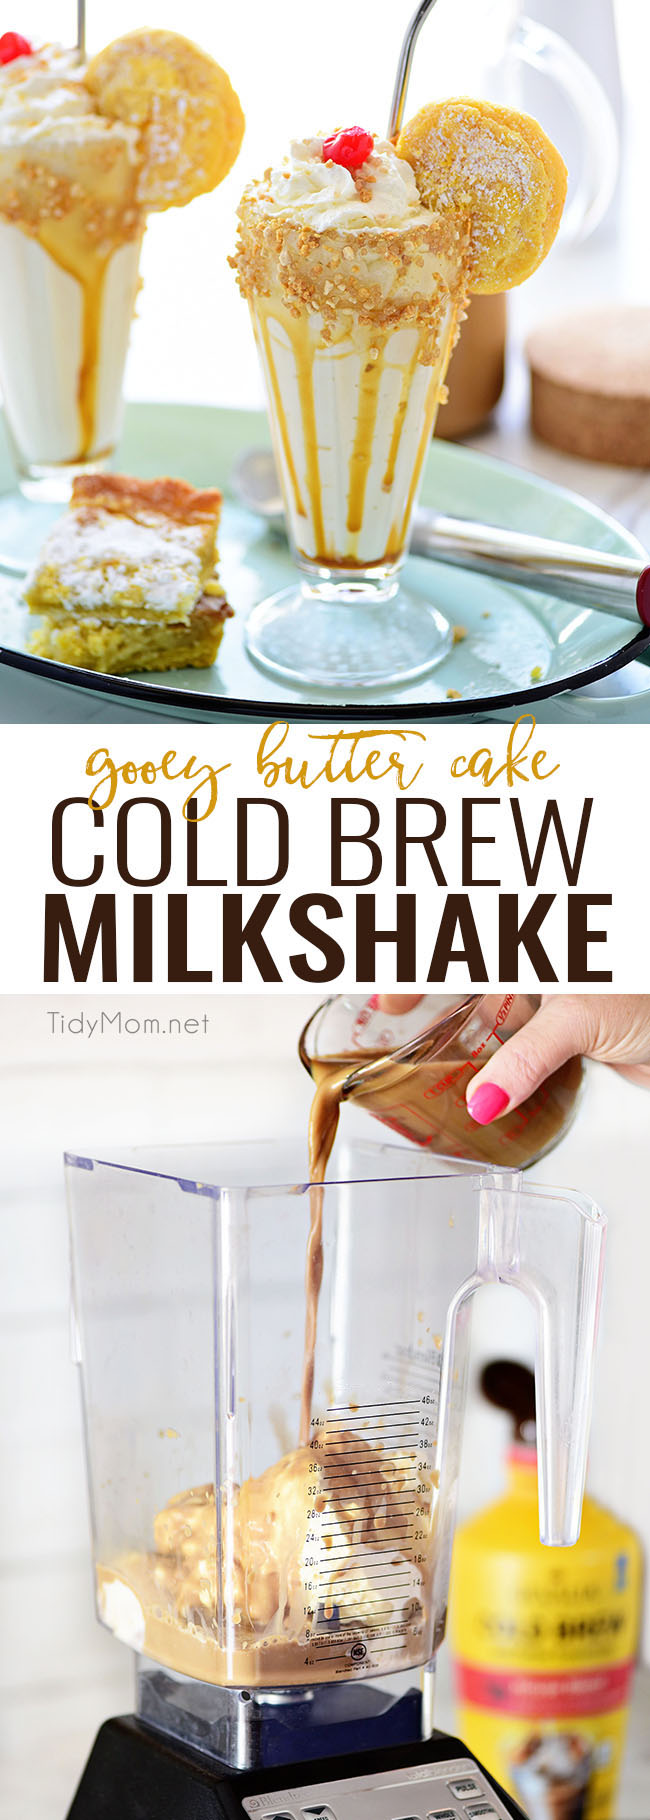 Creamy and delicious, a Gooey Butter Cake Cold Brew Milkshake is the perfect dessert or treat!  This decadent cold brew milkshake tastes like a piece of gooey butter cake with a cup of coffee.  Print the recipe at TidyMom.net #milkshake #gooeybuttercake